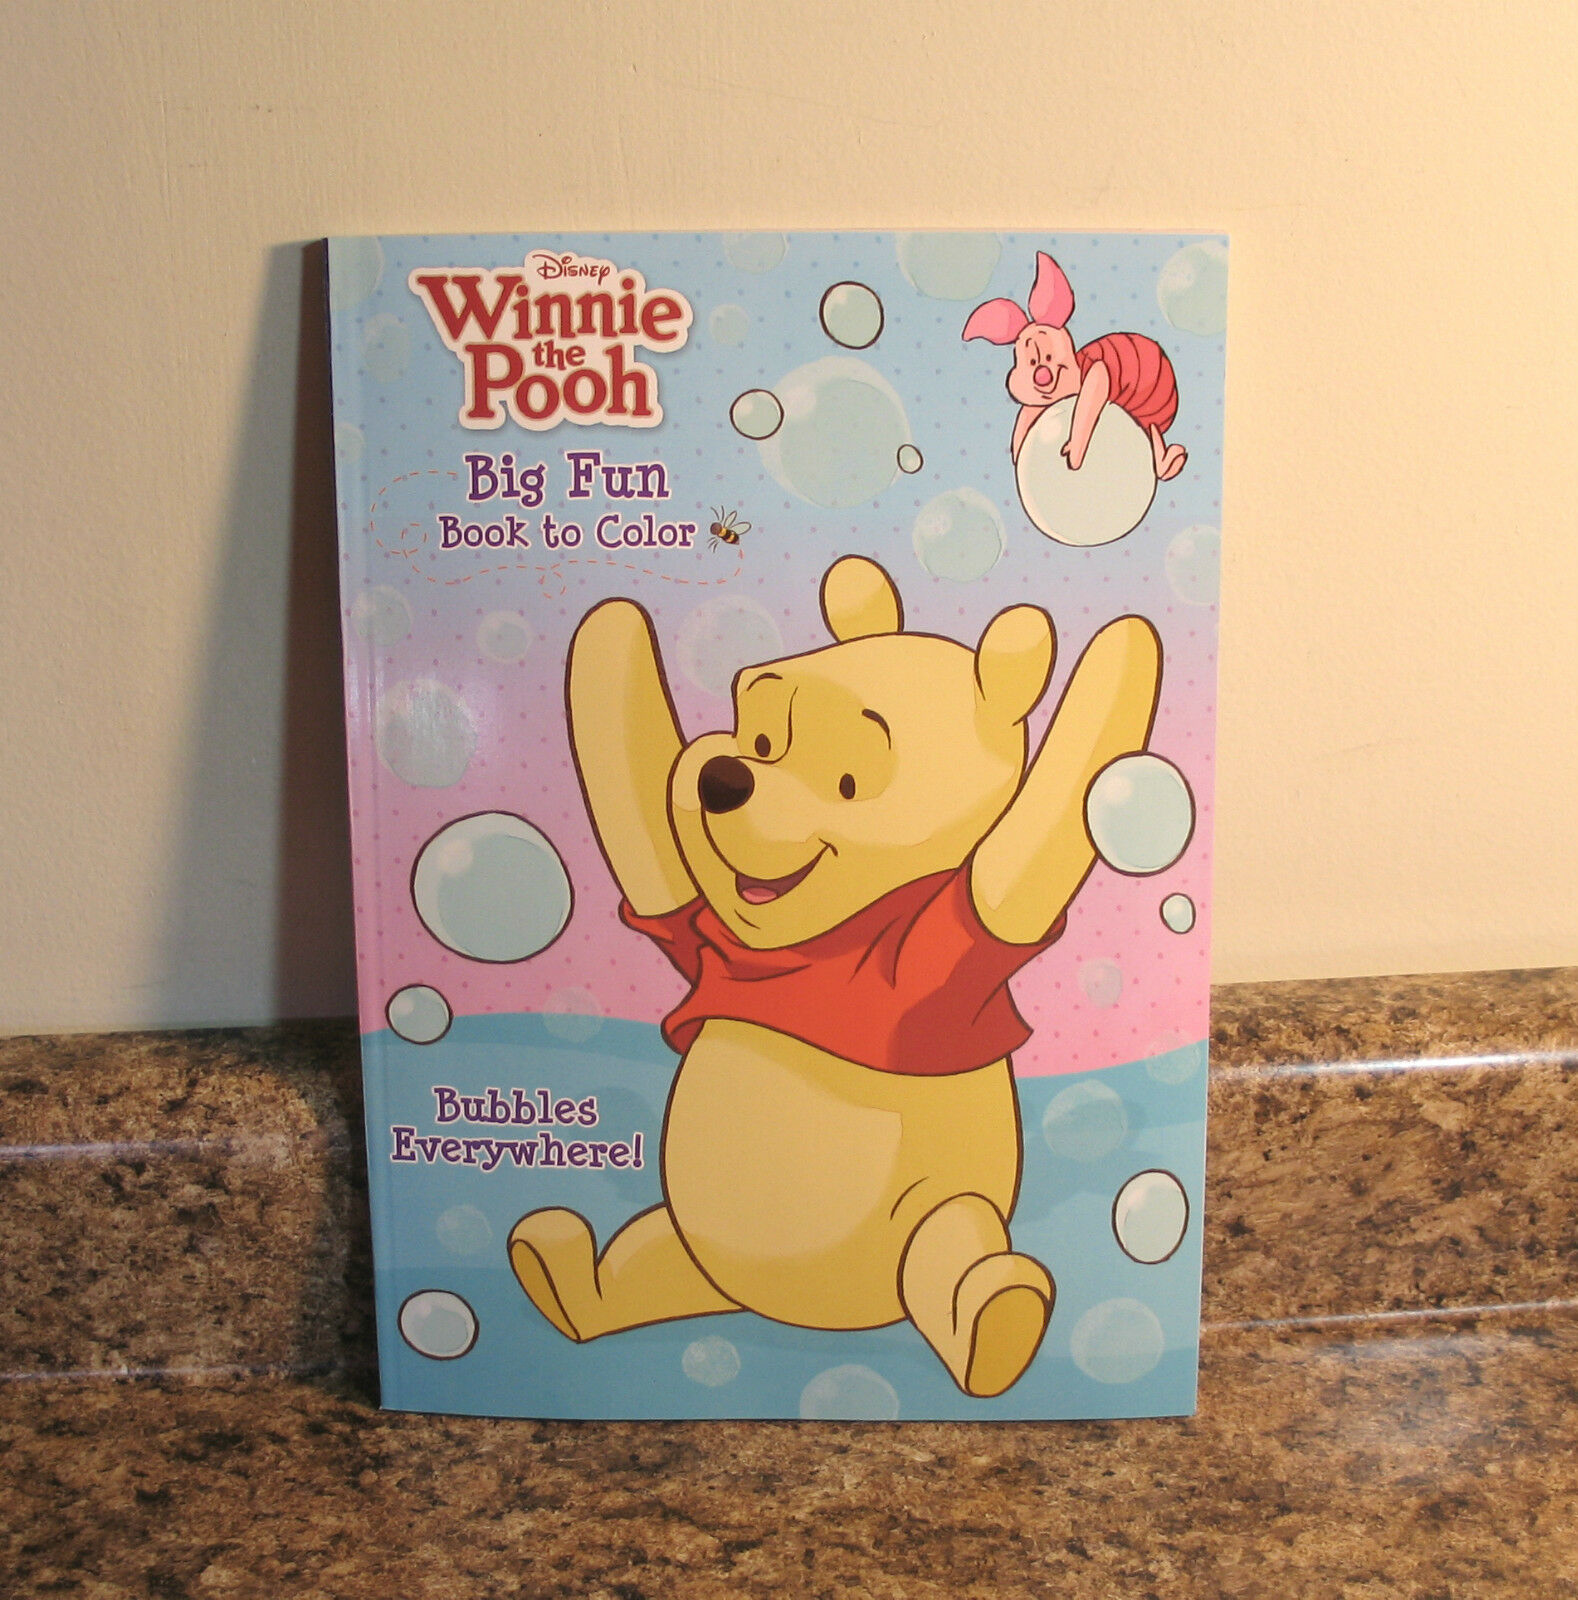 ISBN 9781403775115 product image for Disney Winnie The Pooh And Friends Coloring Book Bubbles Everywhere | upcitemdb.com